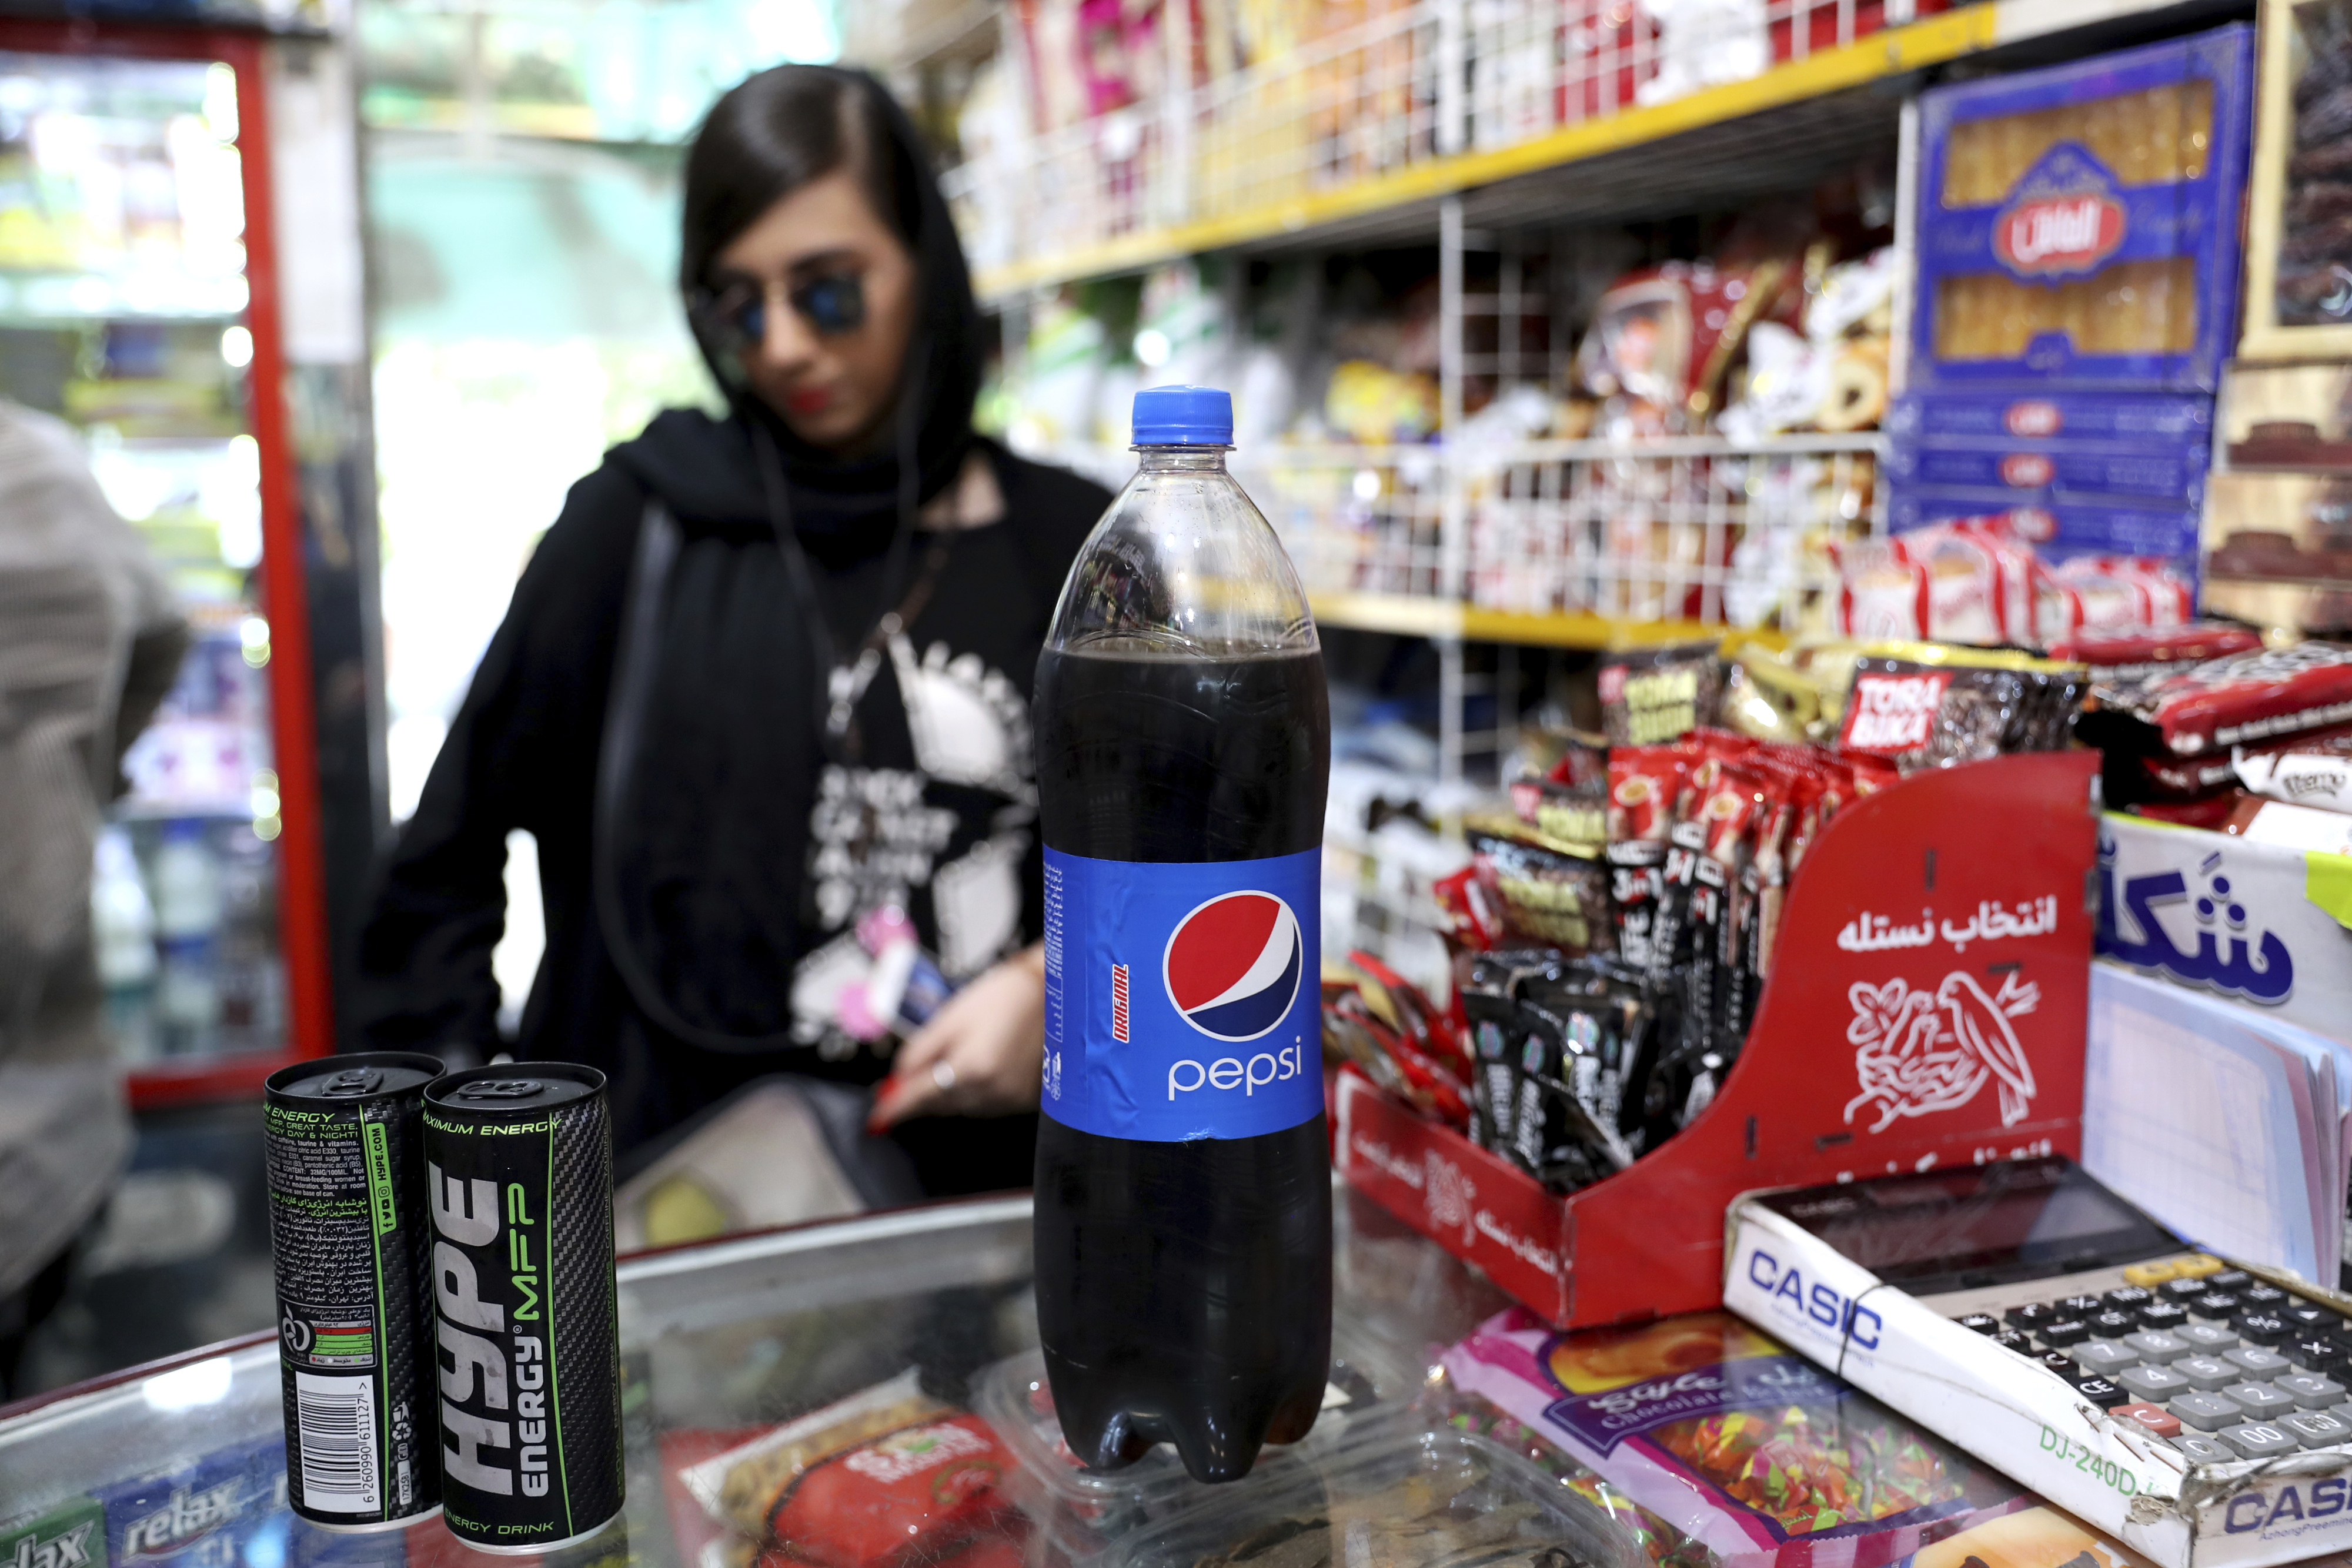 From hot sauce to pop gloss, US products seep into Iran